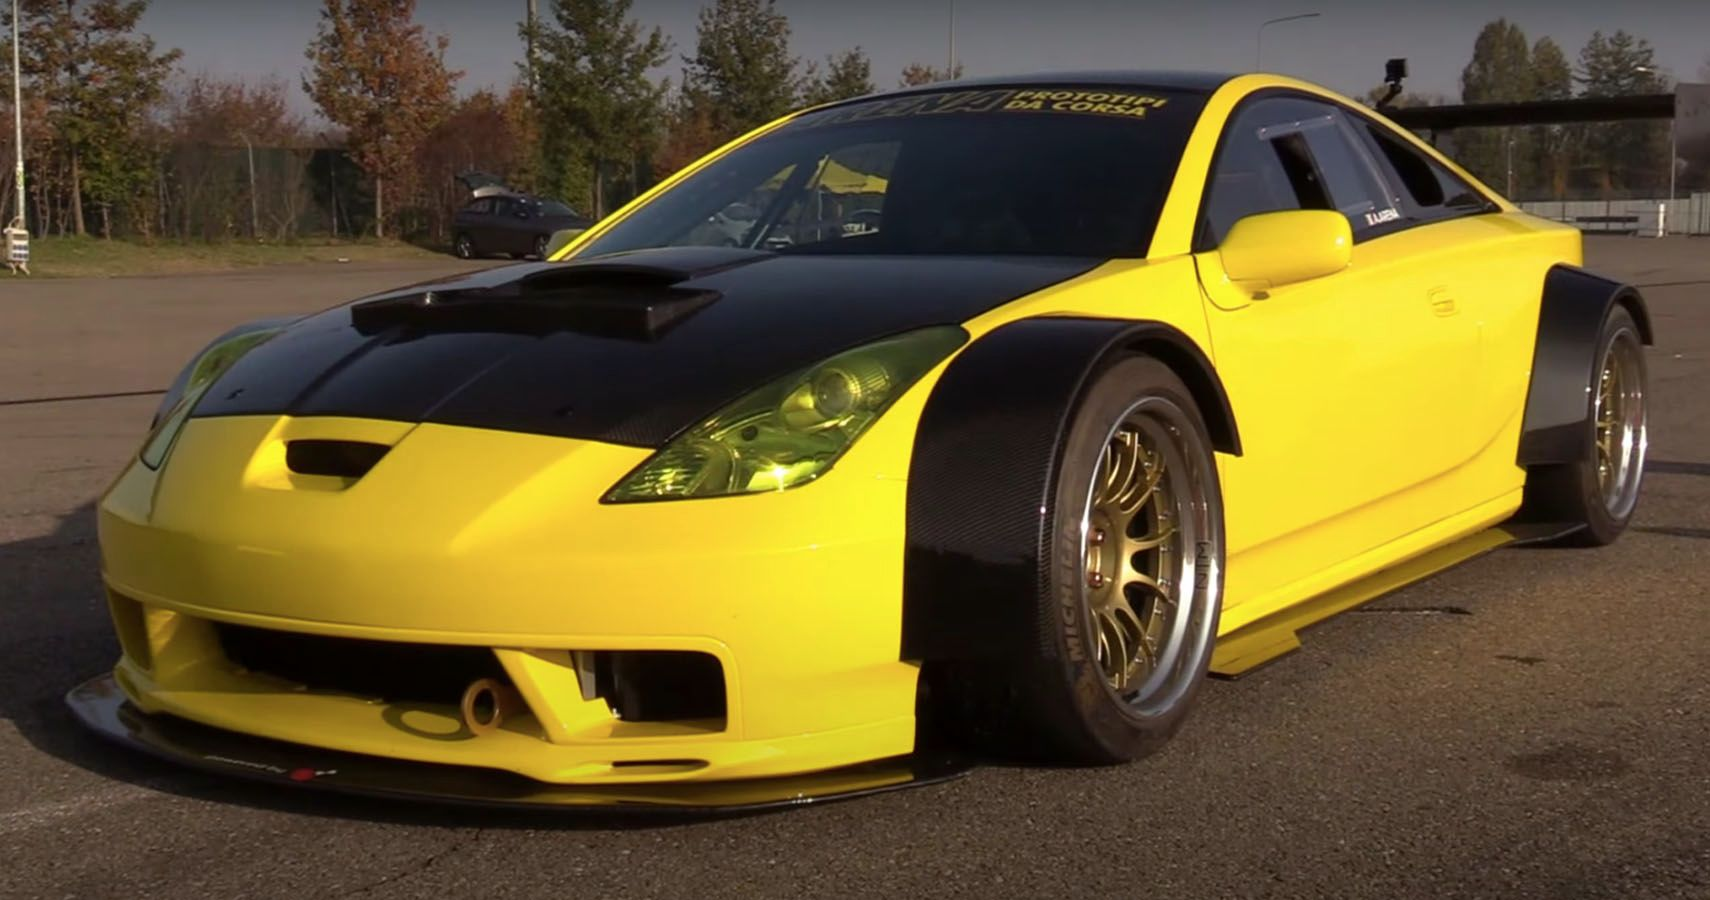 Listen To This Widebody Toyota Celica Boasting A Mid Engined Ferrari V8